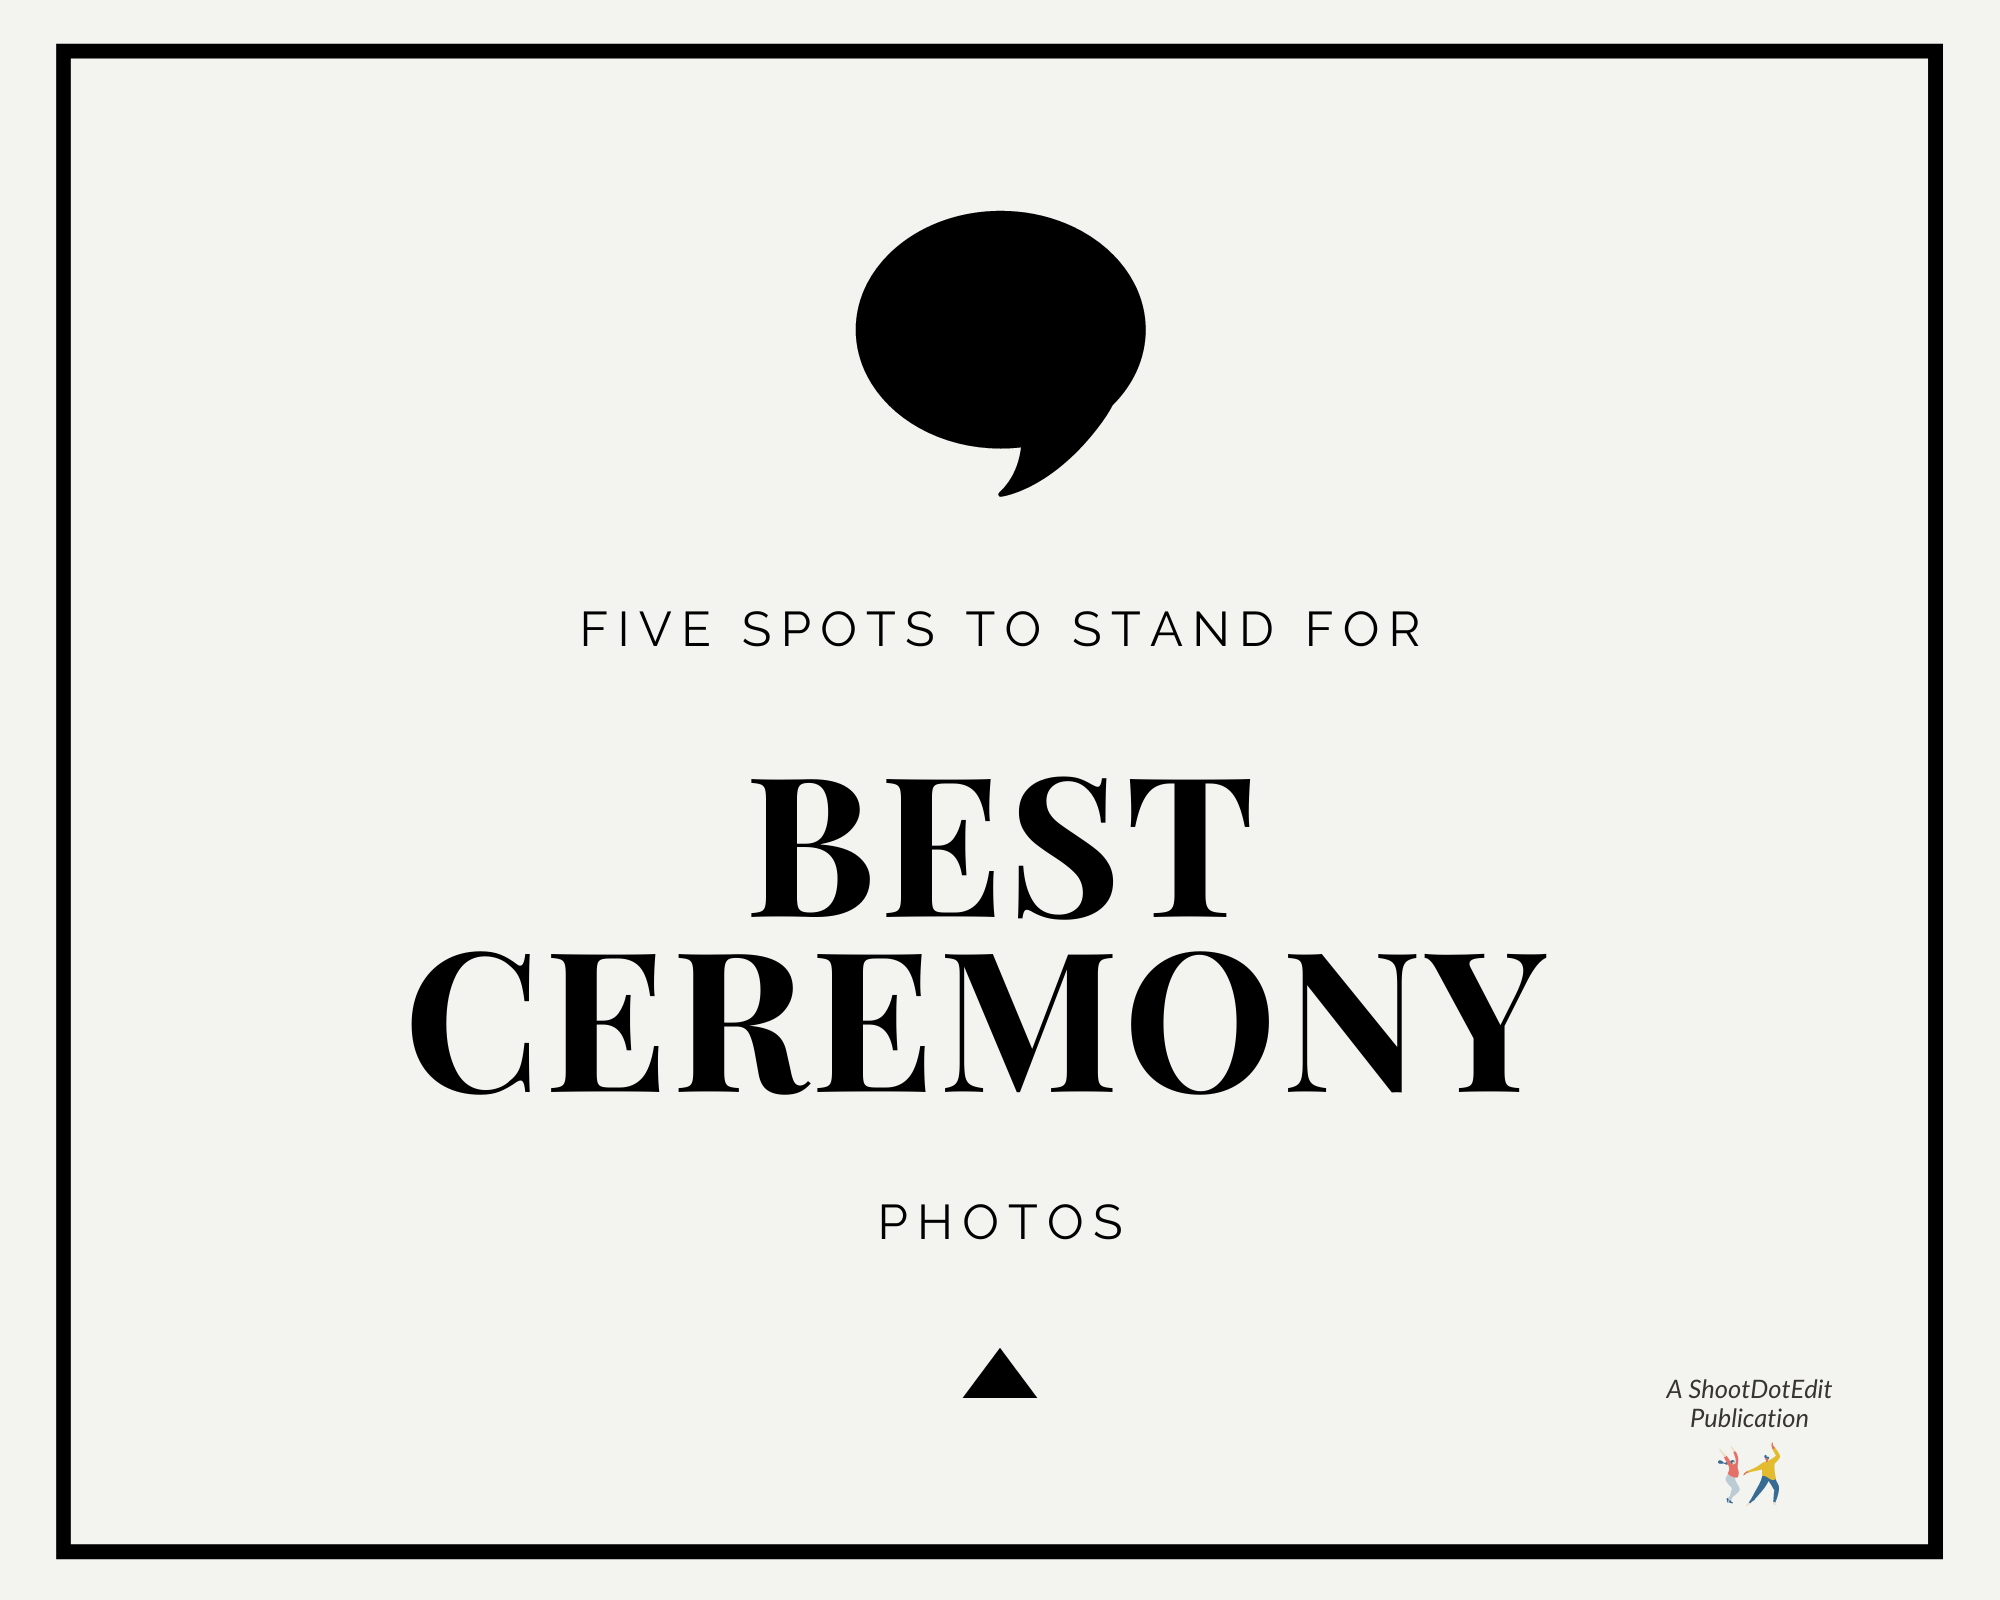 Infographic stating 5 spots to stand for best ceremony photos